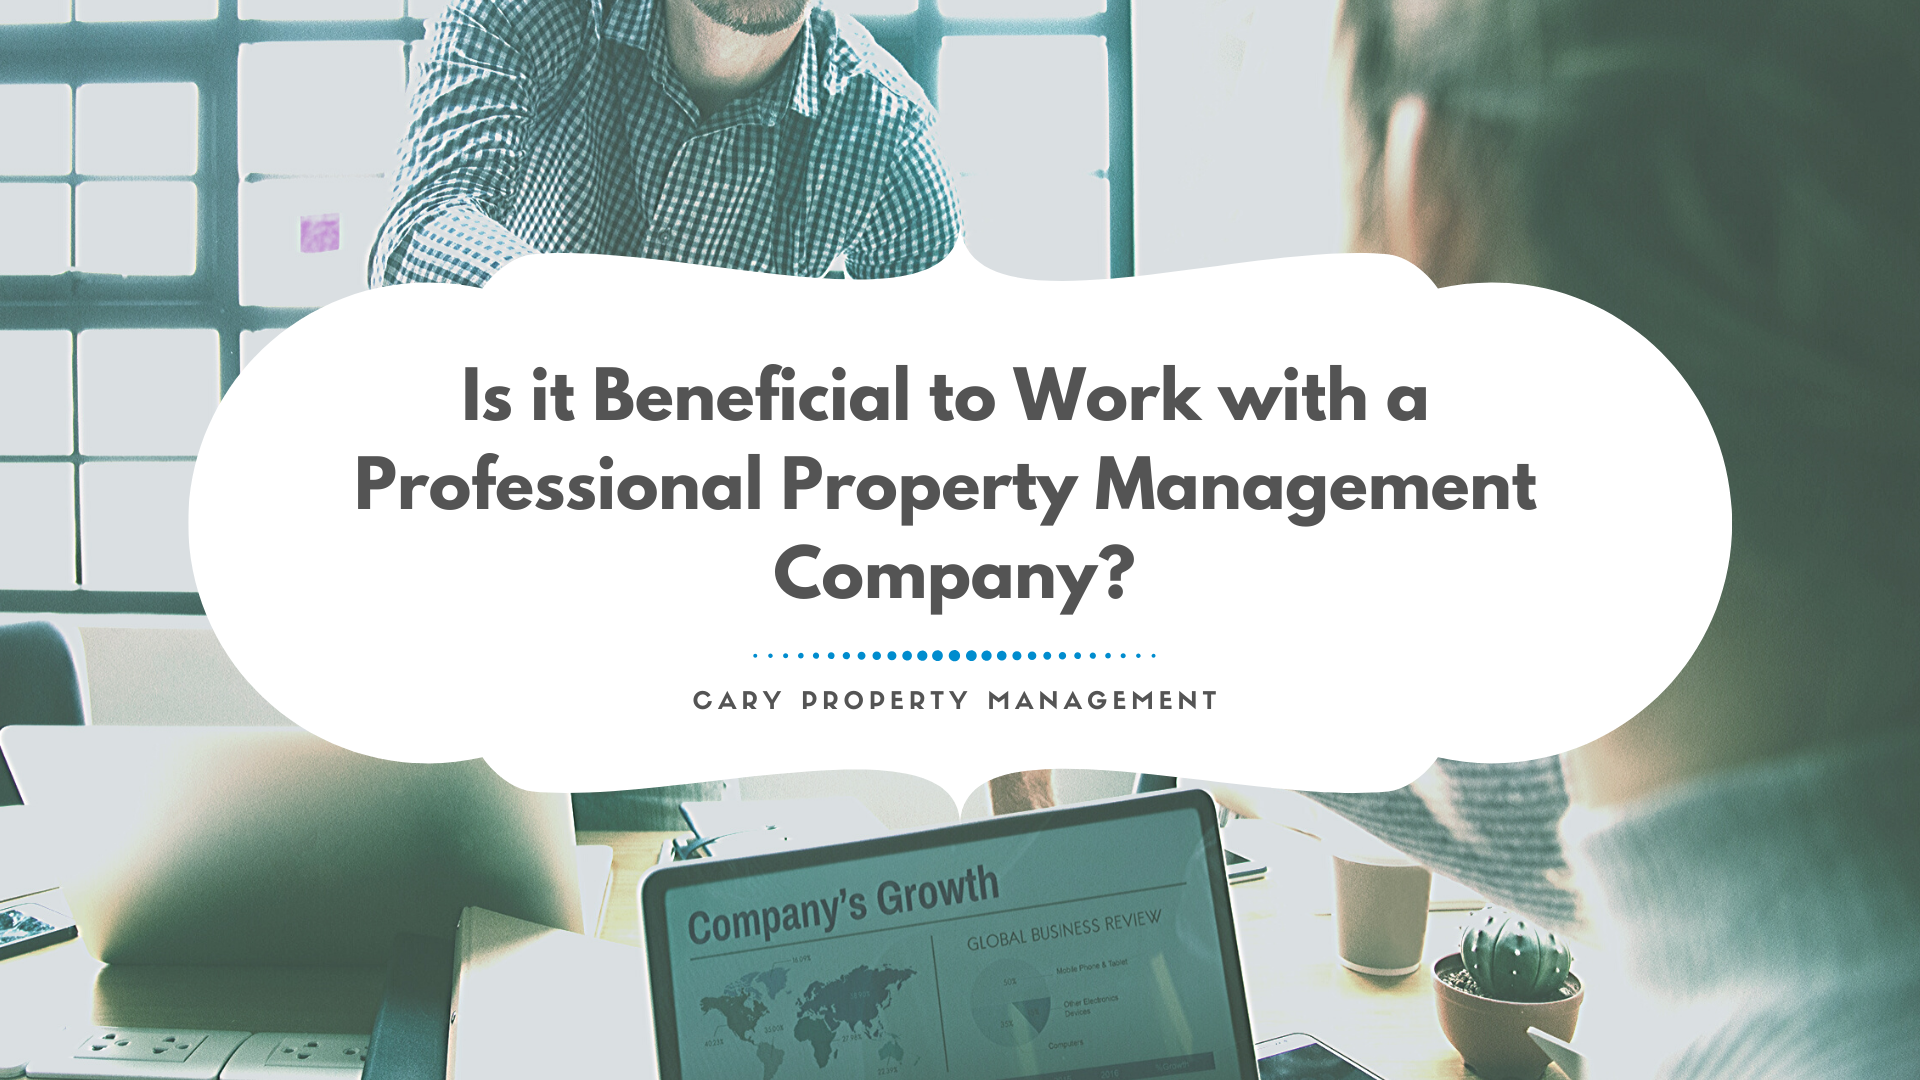 Is it Beneficial to Work with a Professional Cary Property Management Company?